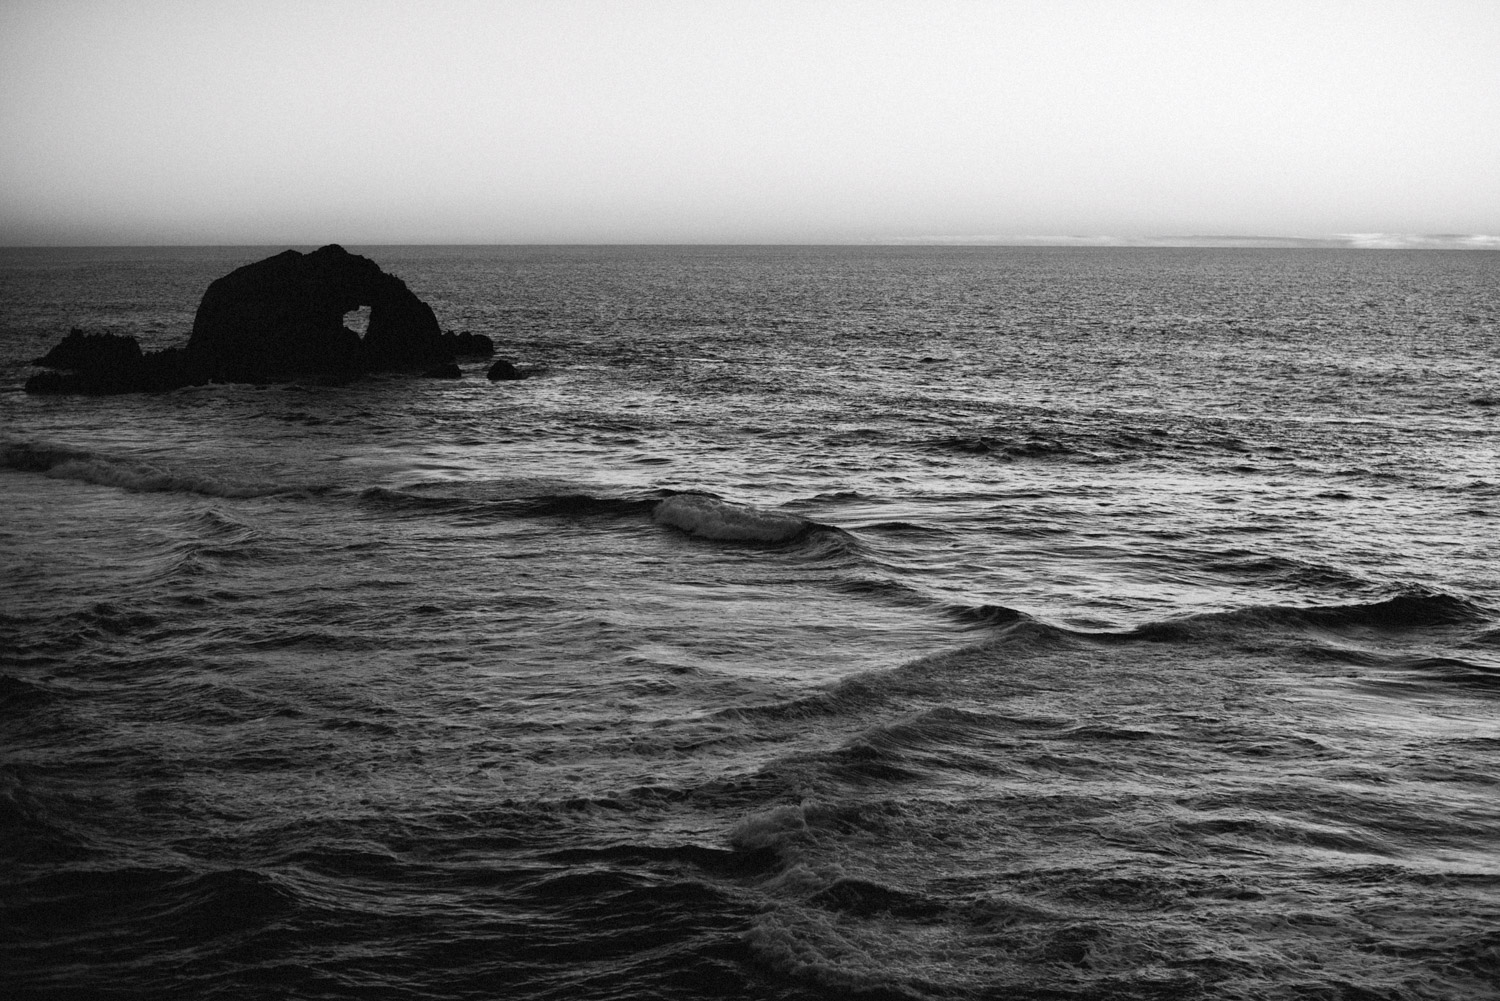 sunset over rock in black and white